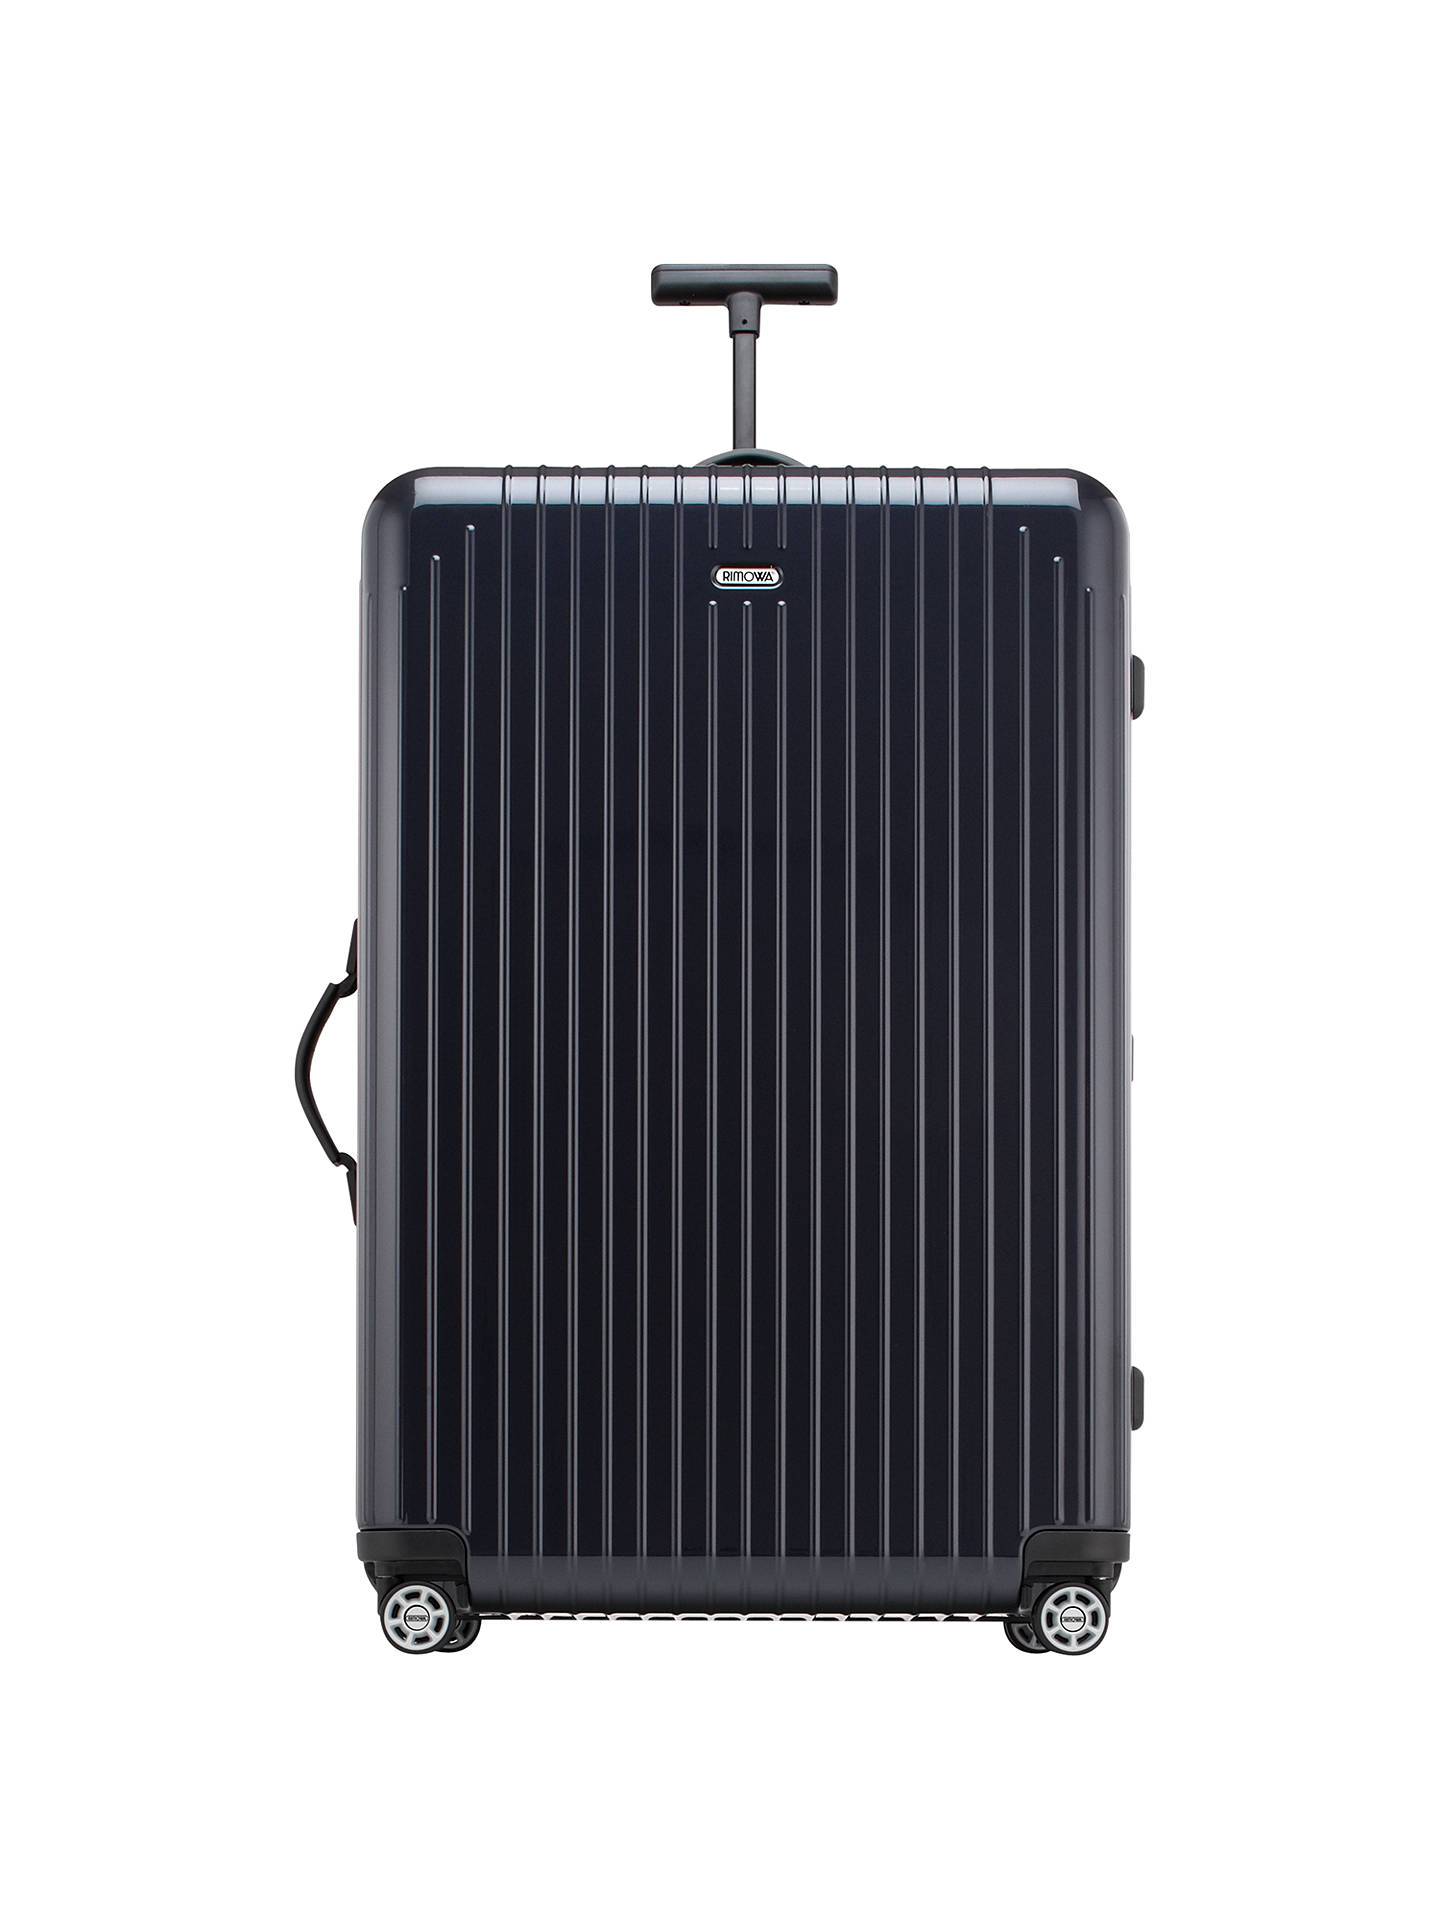 aa9ebbba1 Buy Rimowa Salsa Air Spinner 4-Wheel 81cm Suitcase, Navy Online at  johnlewis.